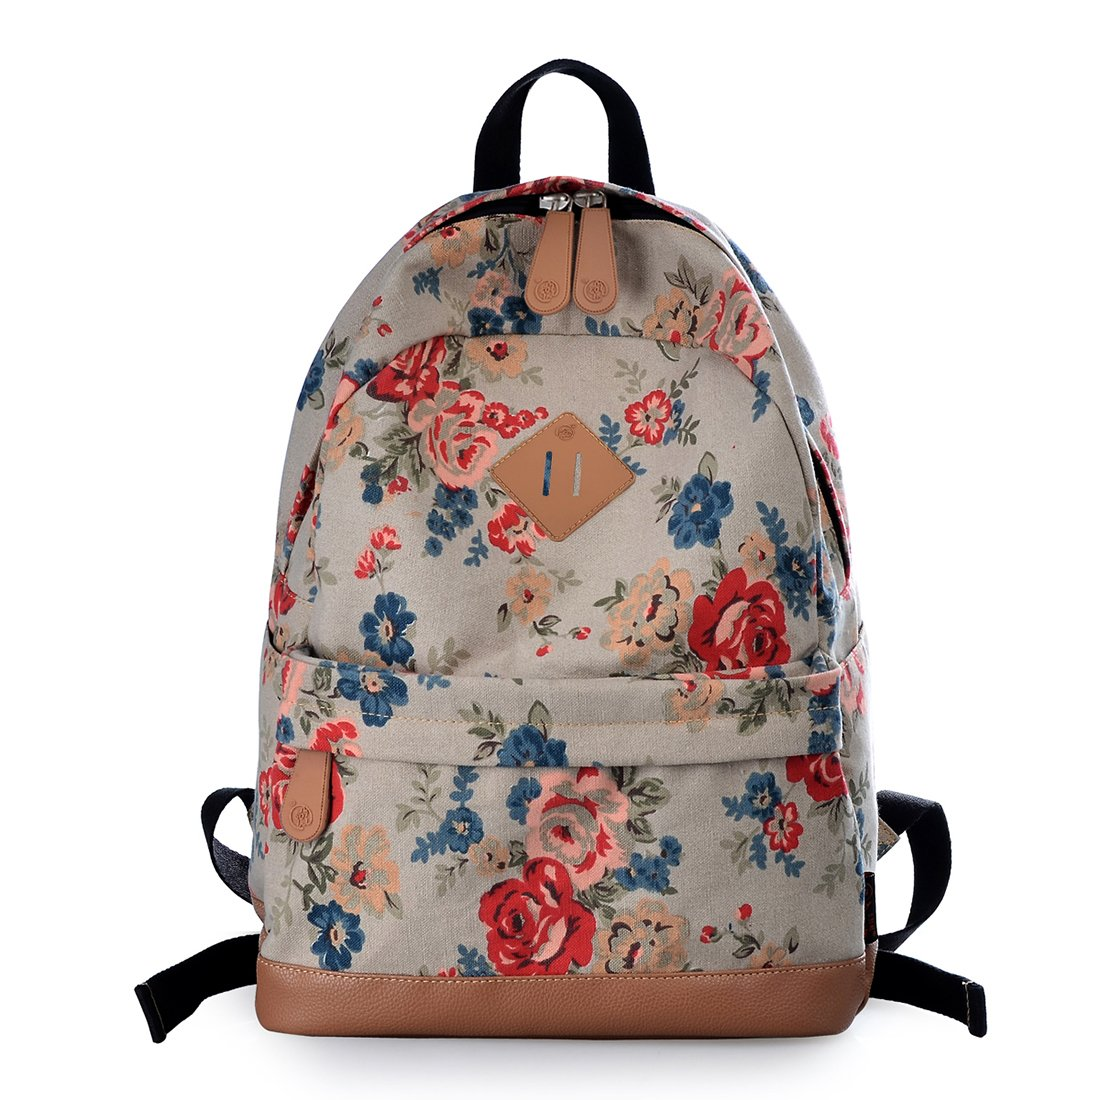 a5cead703d Amazon.com  Epokris Girls Fashion Floral School Student Canvas Bag Backpack  133B (Khaki-2)  Toys   Games